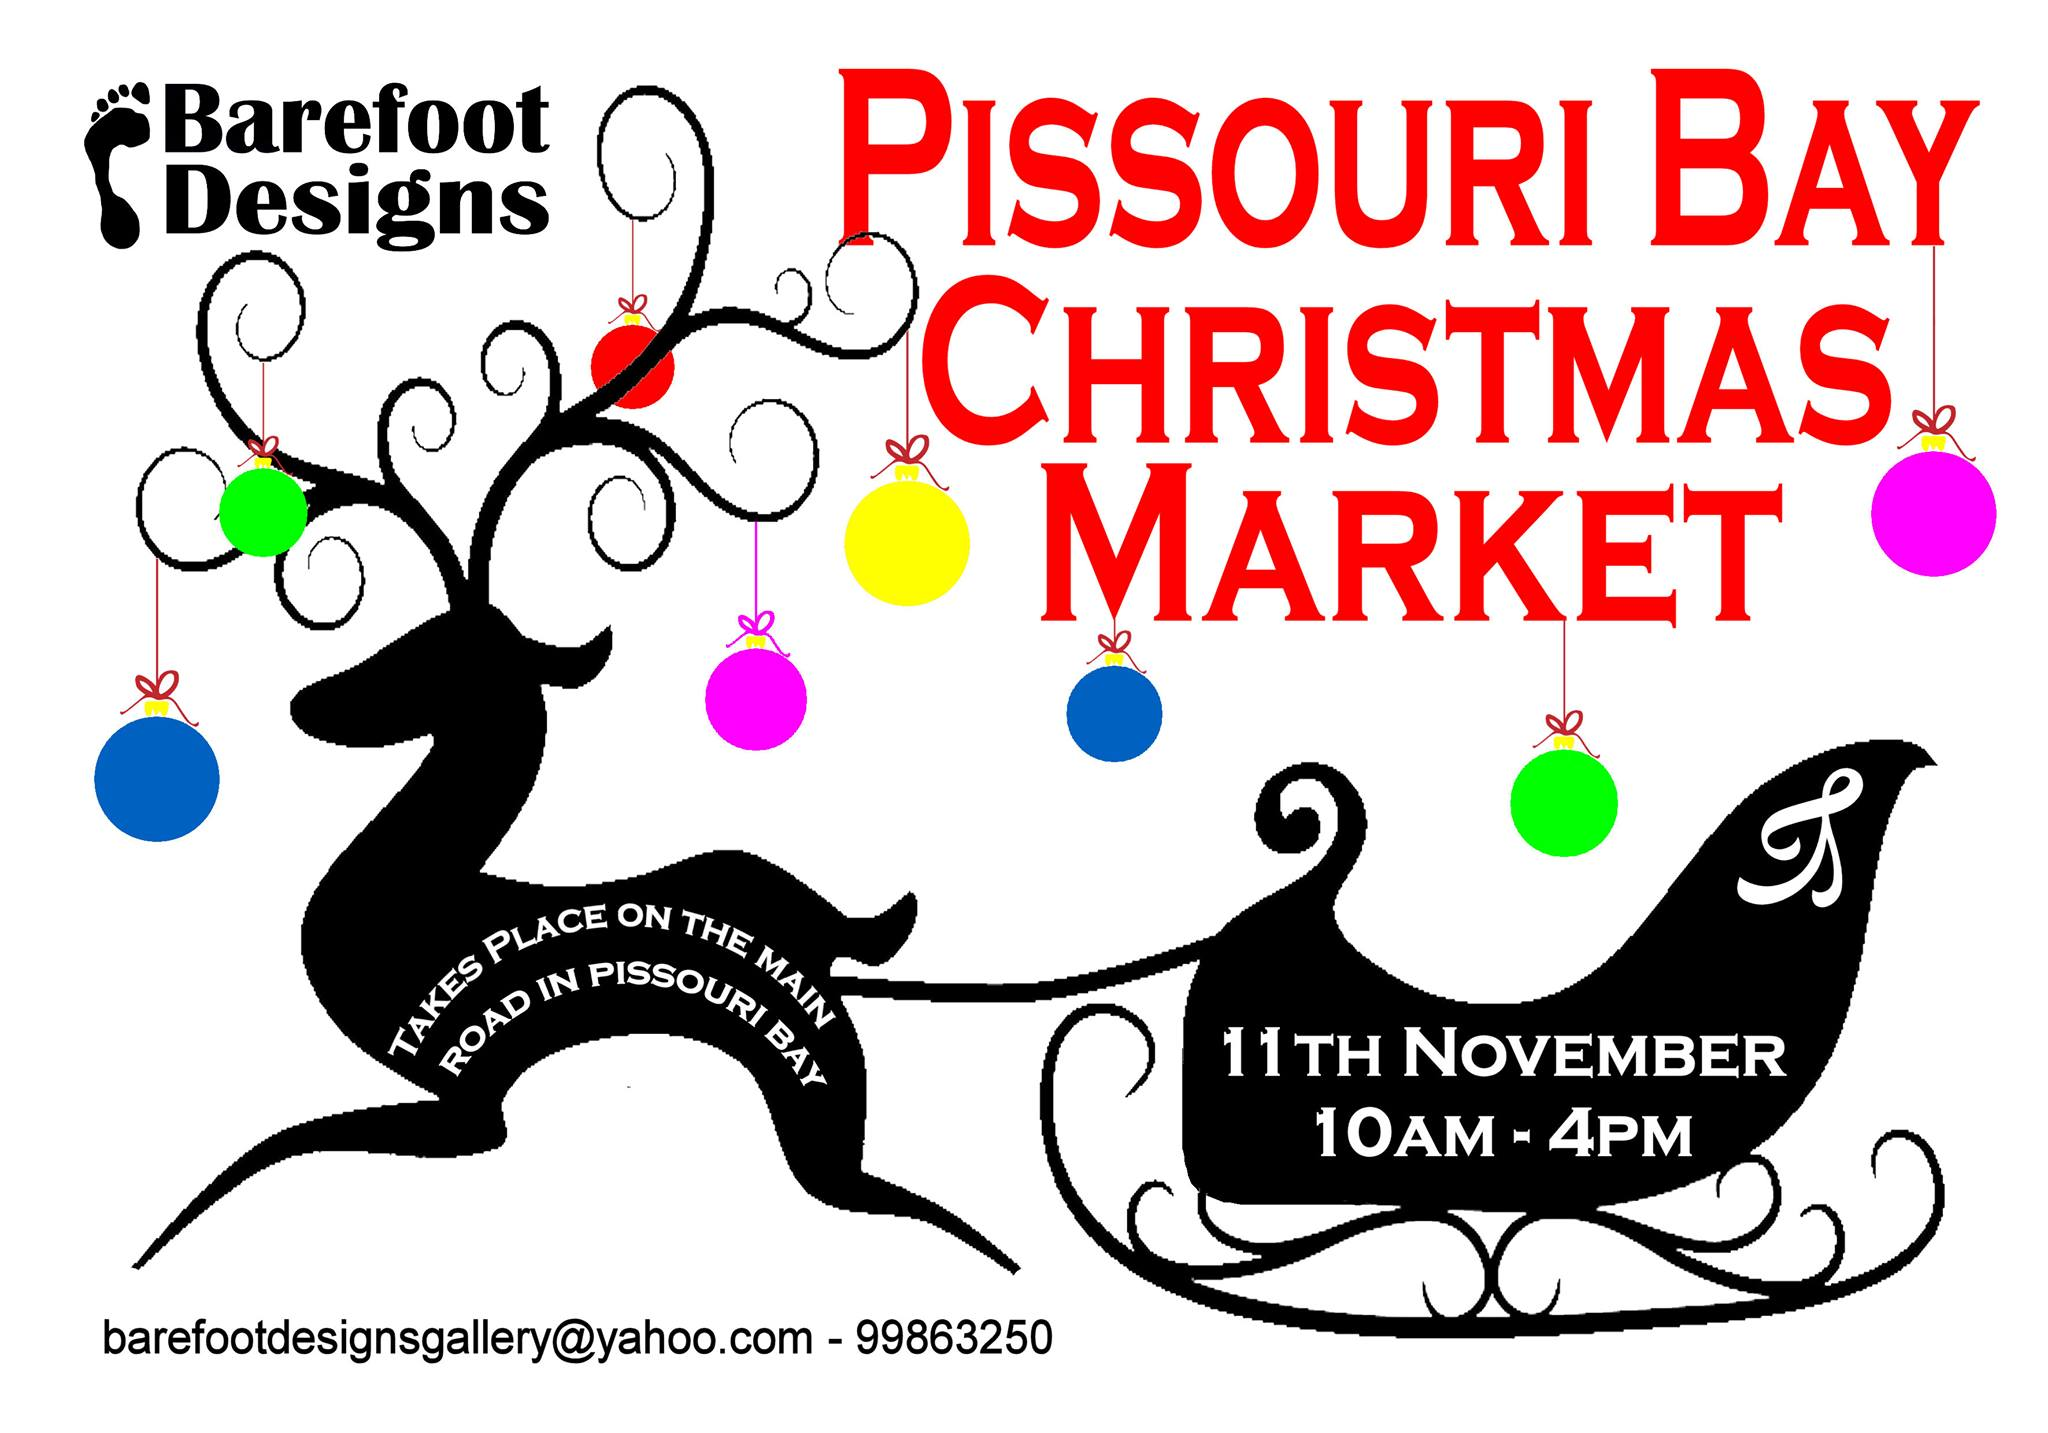 Pissouri Bay Christmas Market